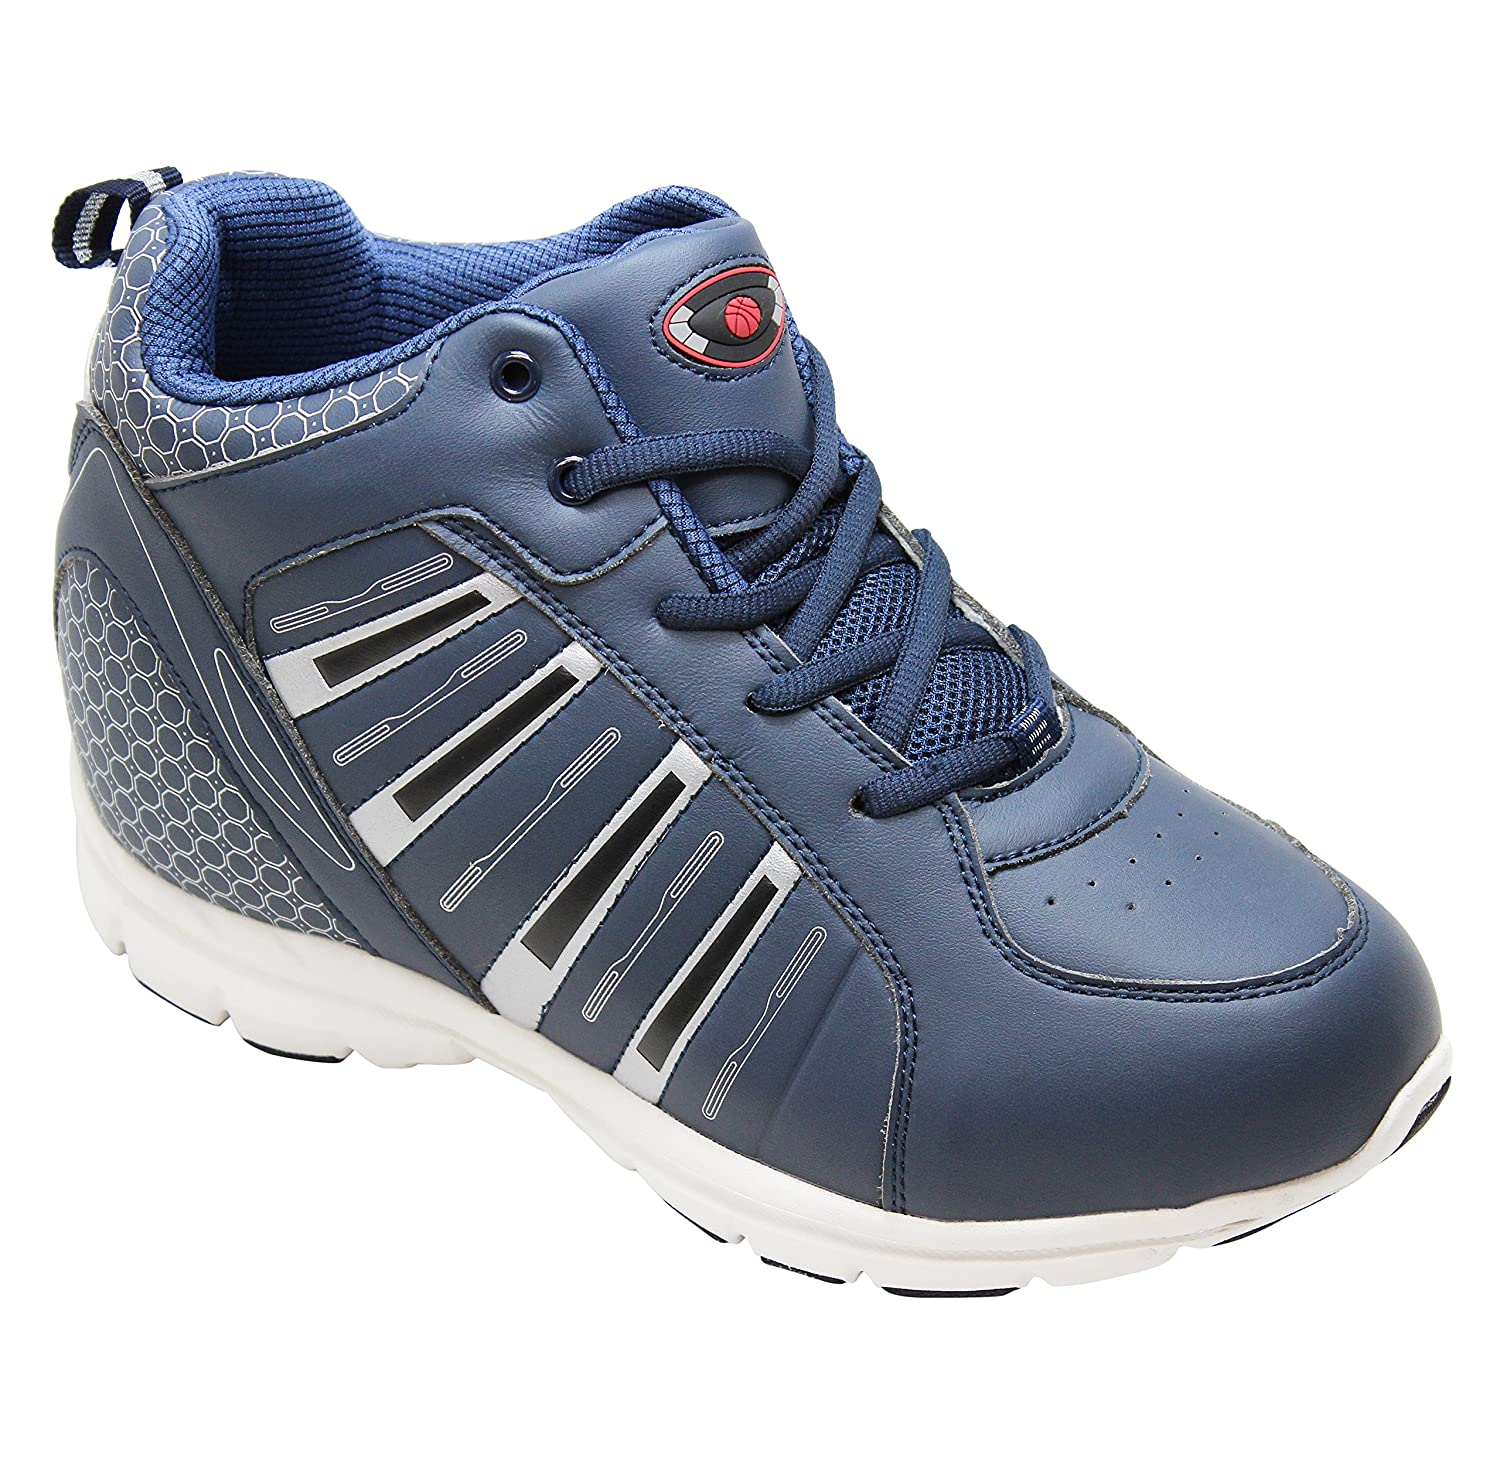 3443563c9b427 Calden Men's Invisible Height Increasing Elevator Shoes - Blue Leather  Lace-up Lightweight Sport Sneakers - 4 Inches Taller - K3333